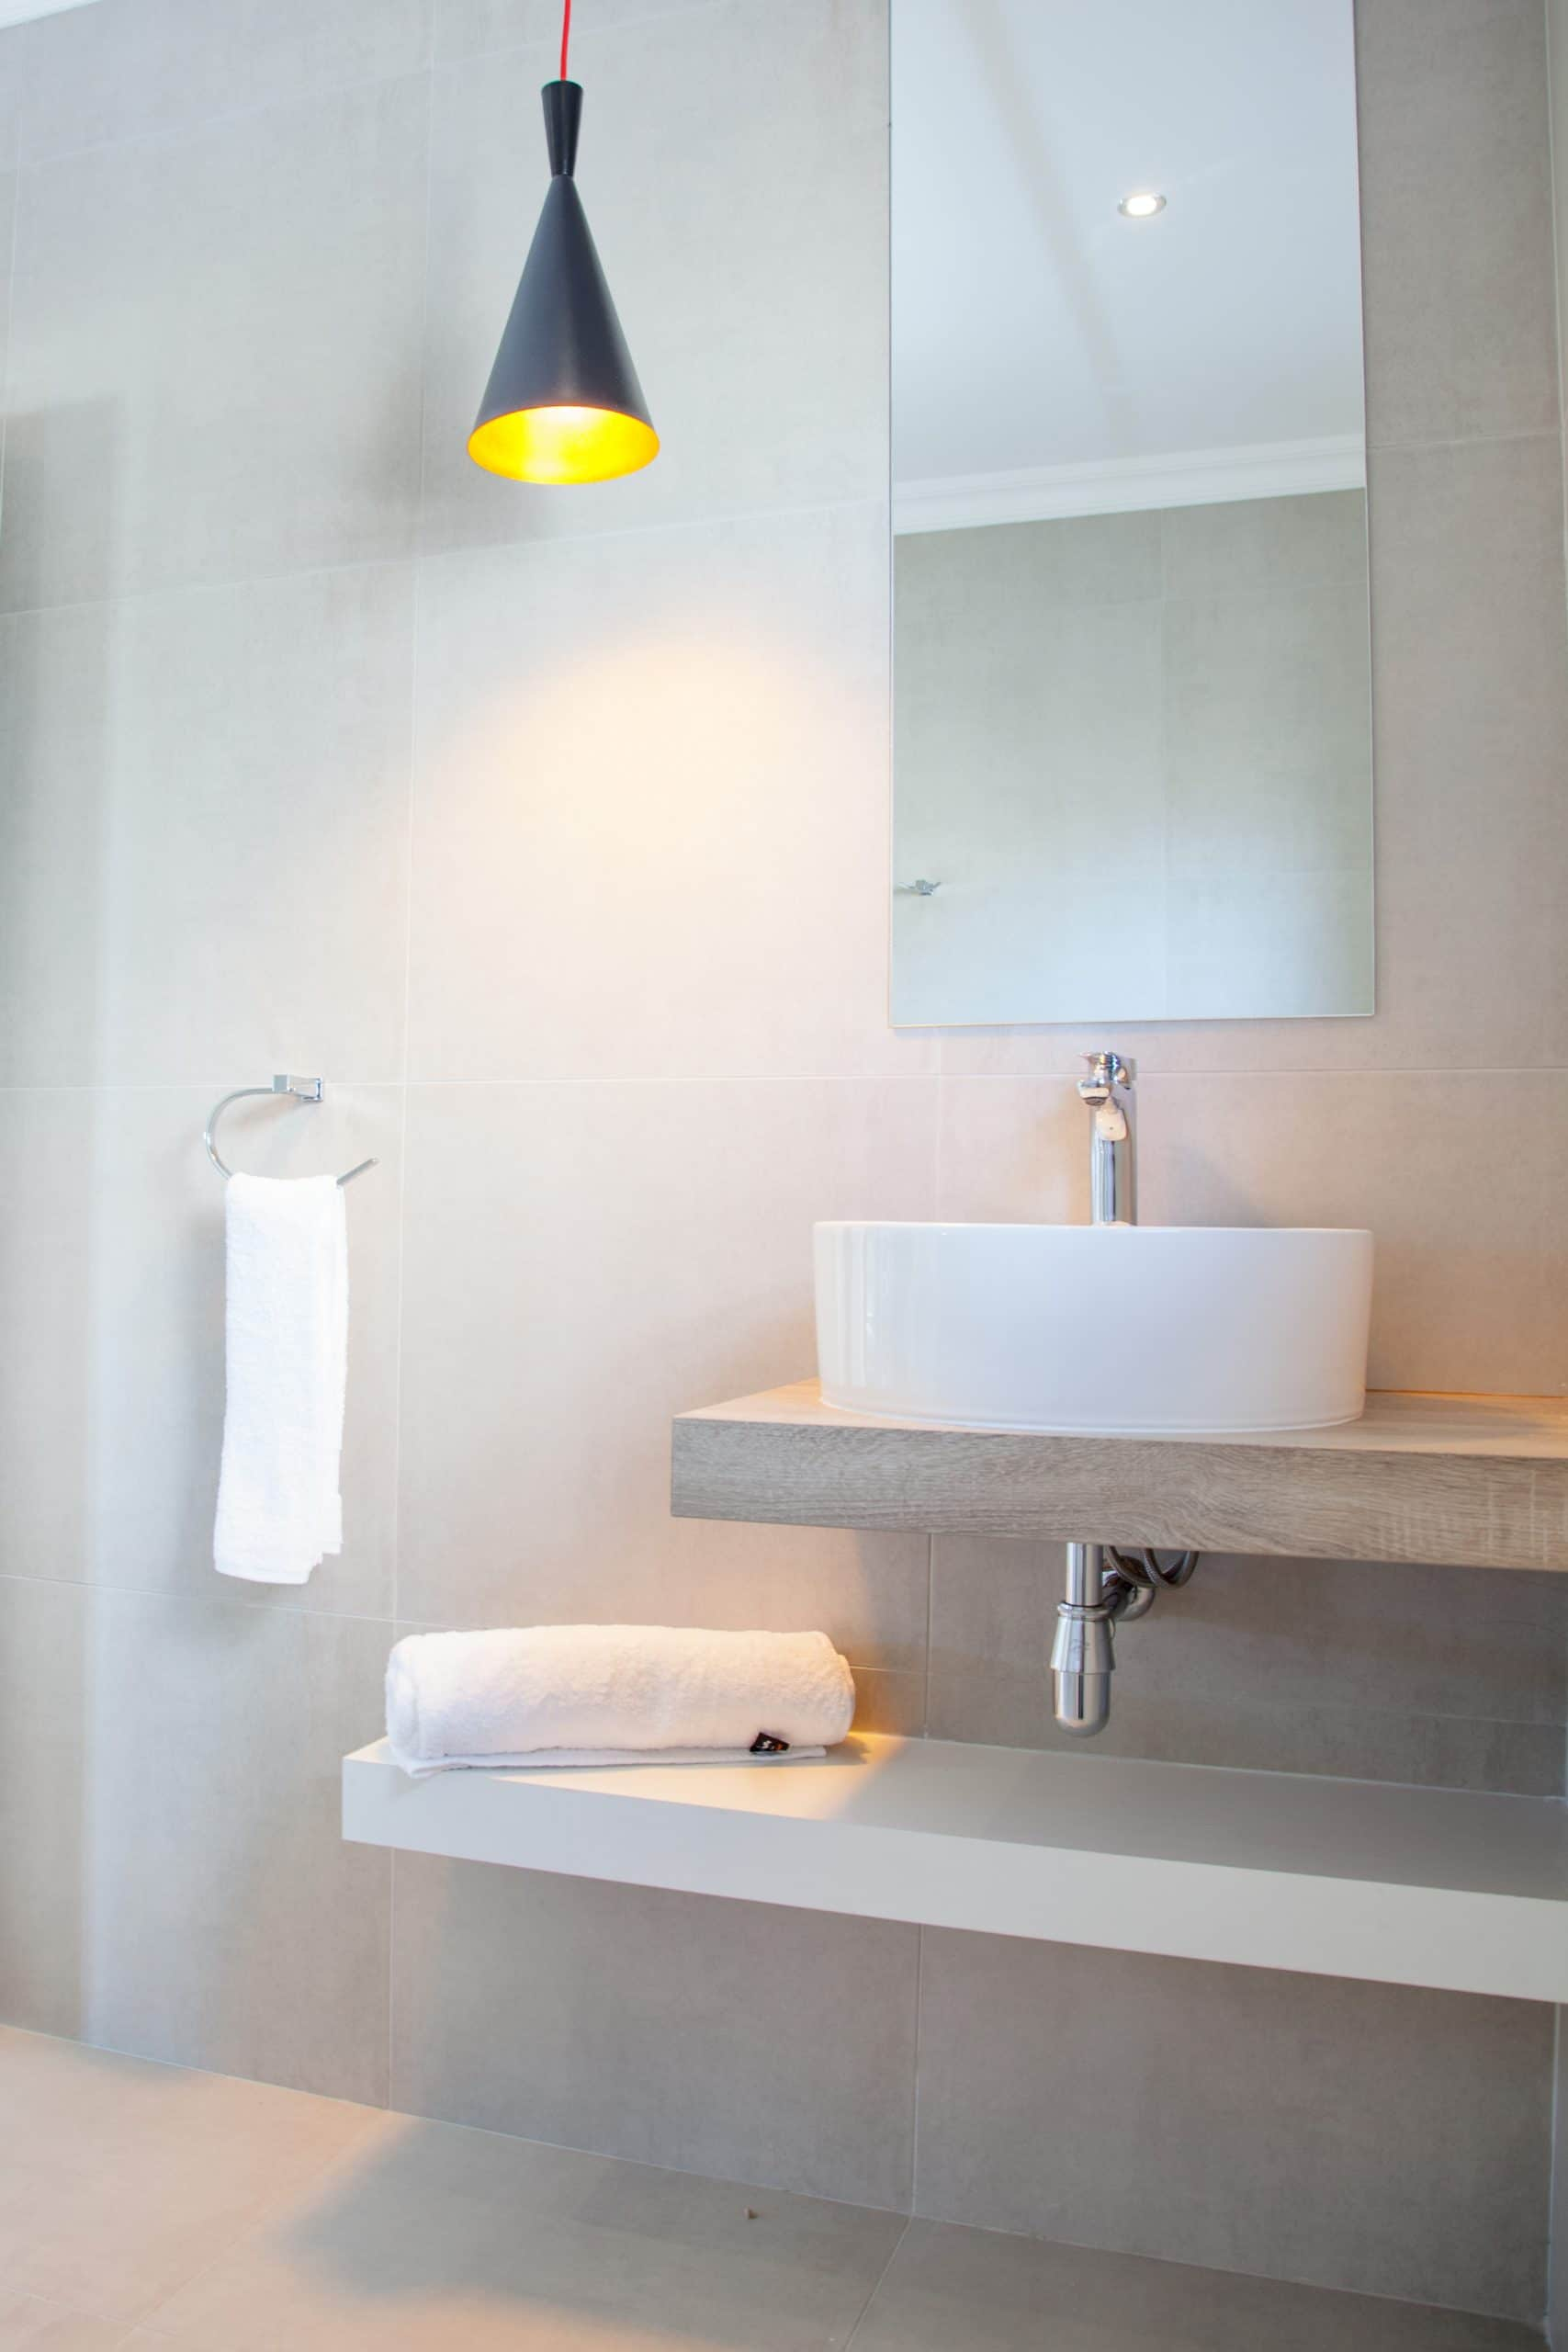 floating vanity with white towel and tiled bathroom walls